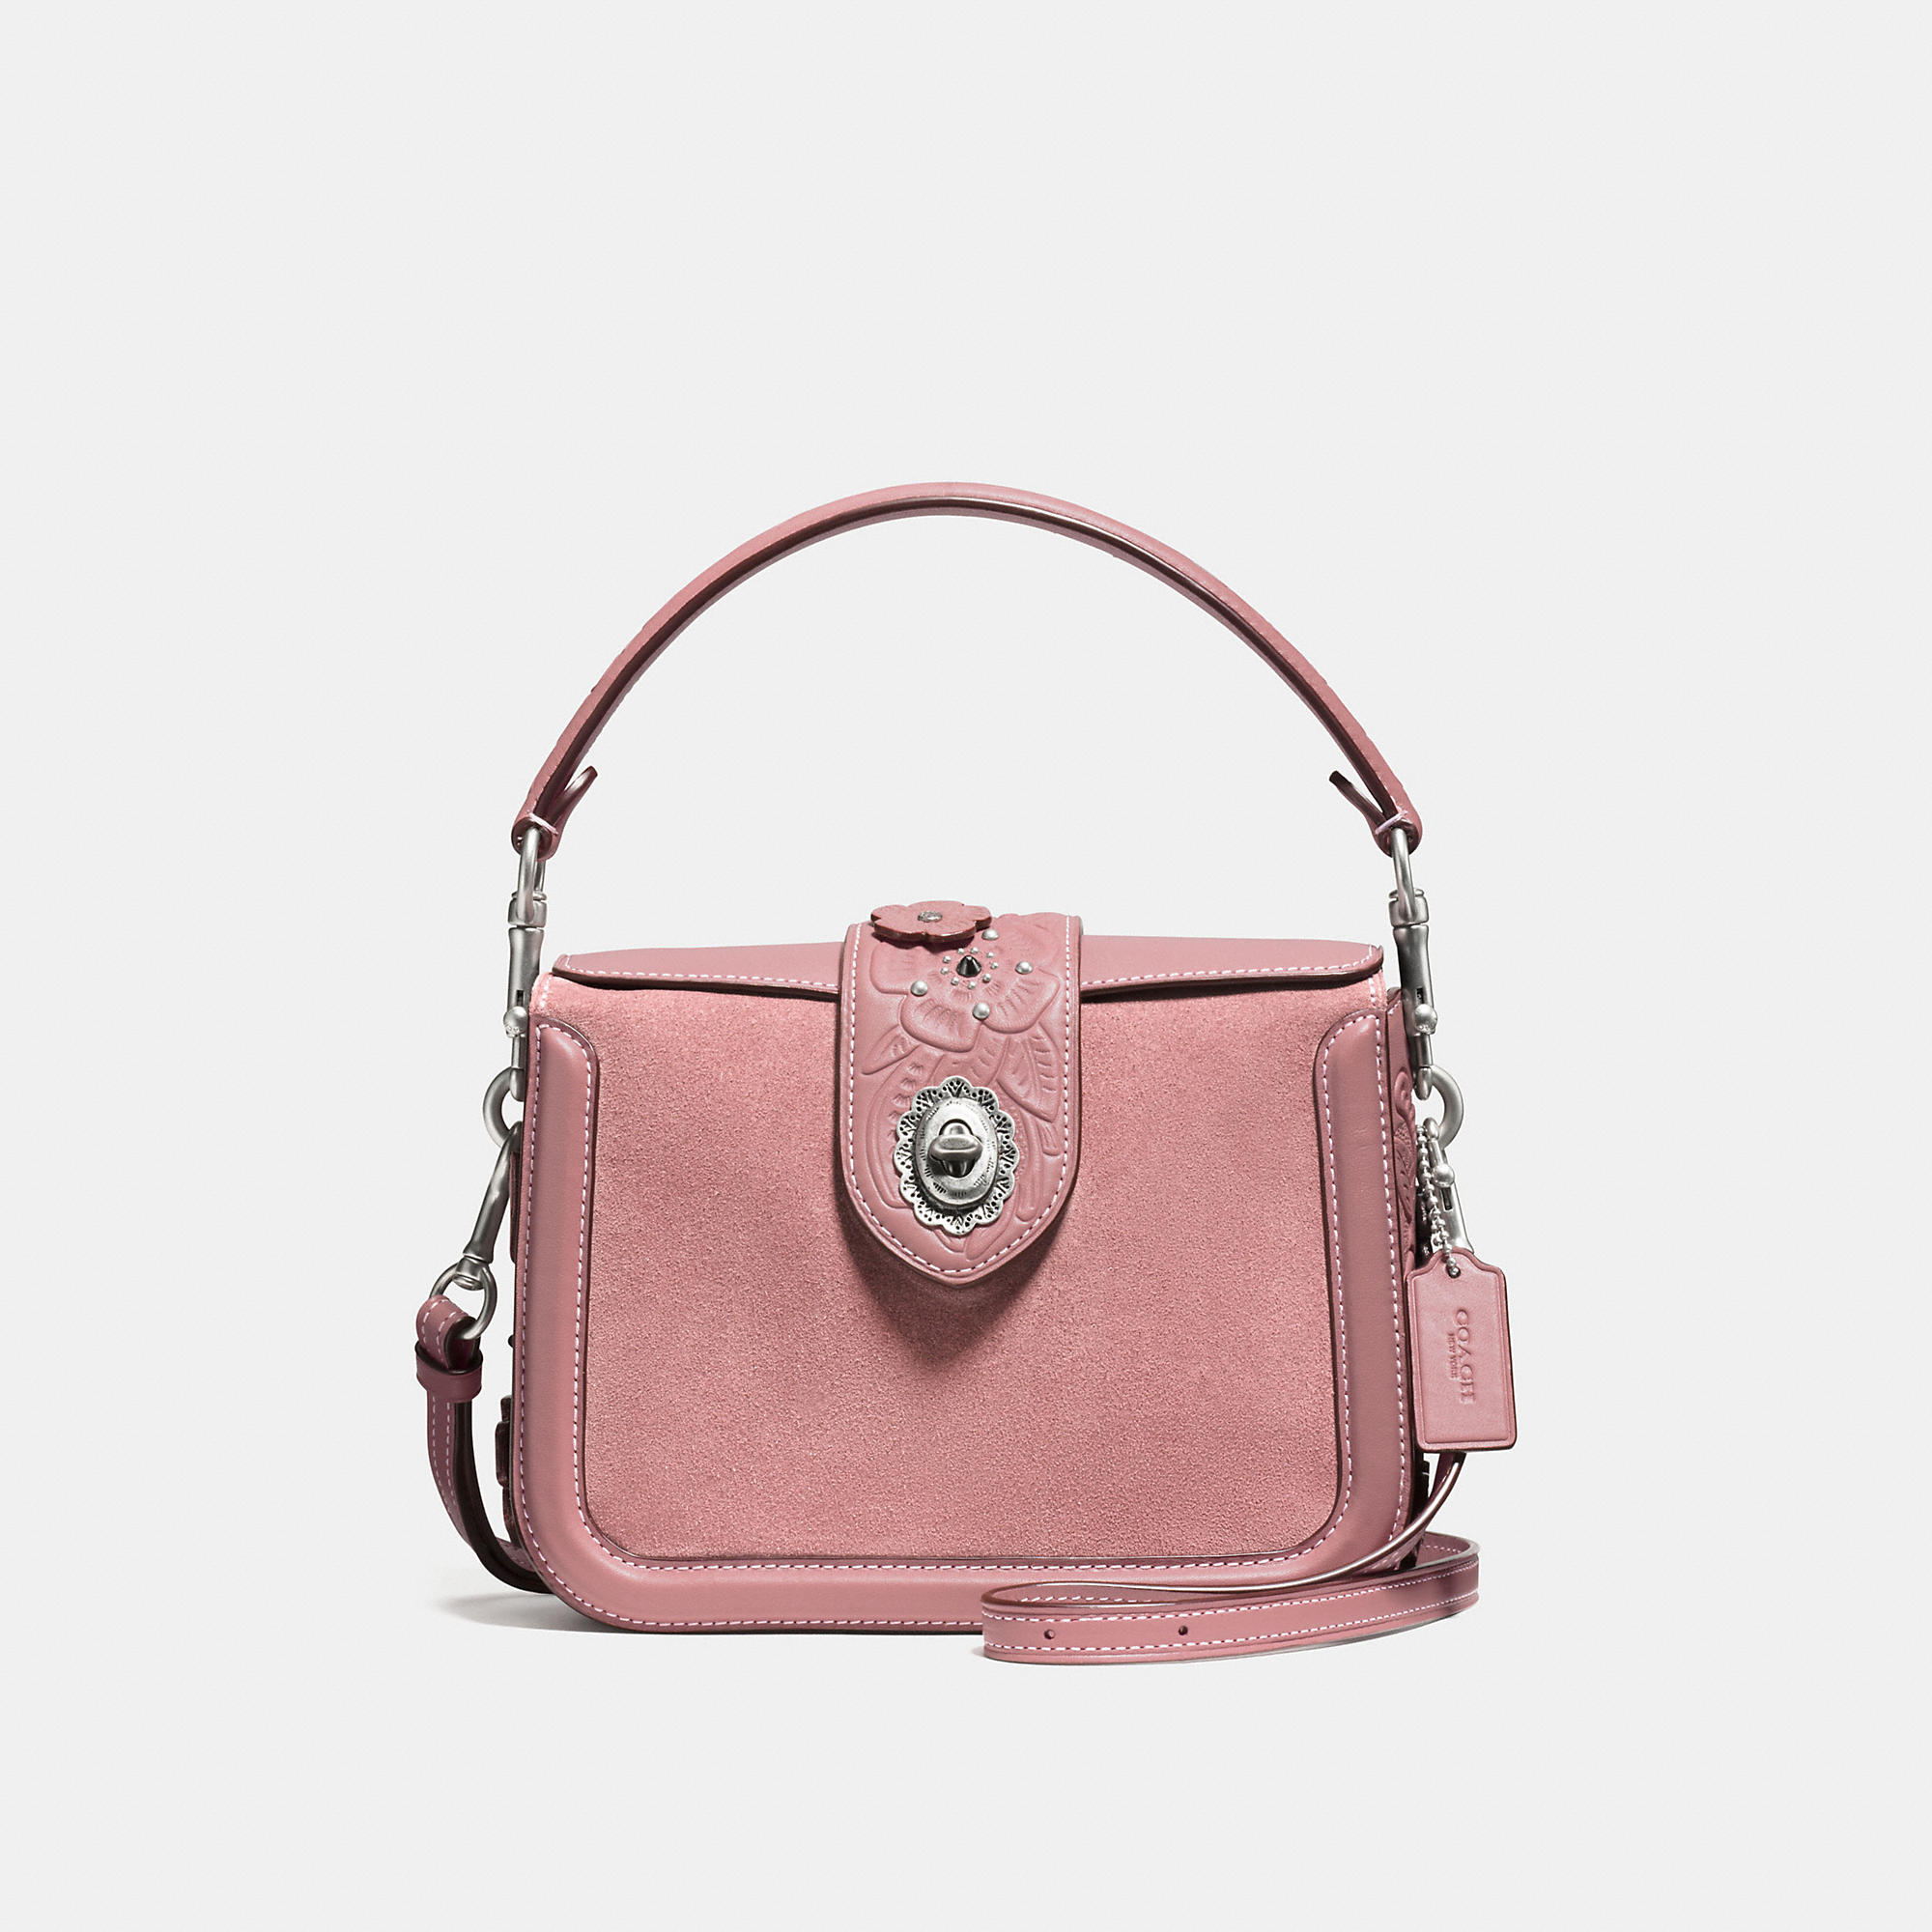 Coach Page Crossbody In Glovetanned Leather With Tea Rose Tooling